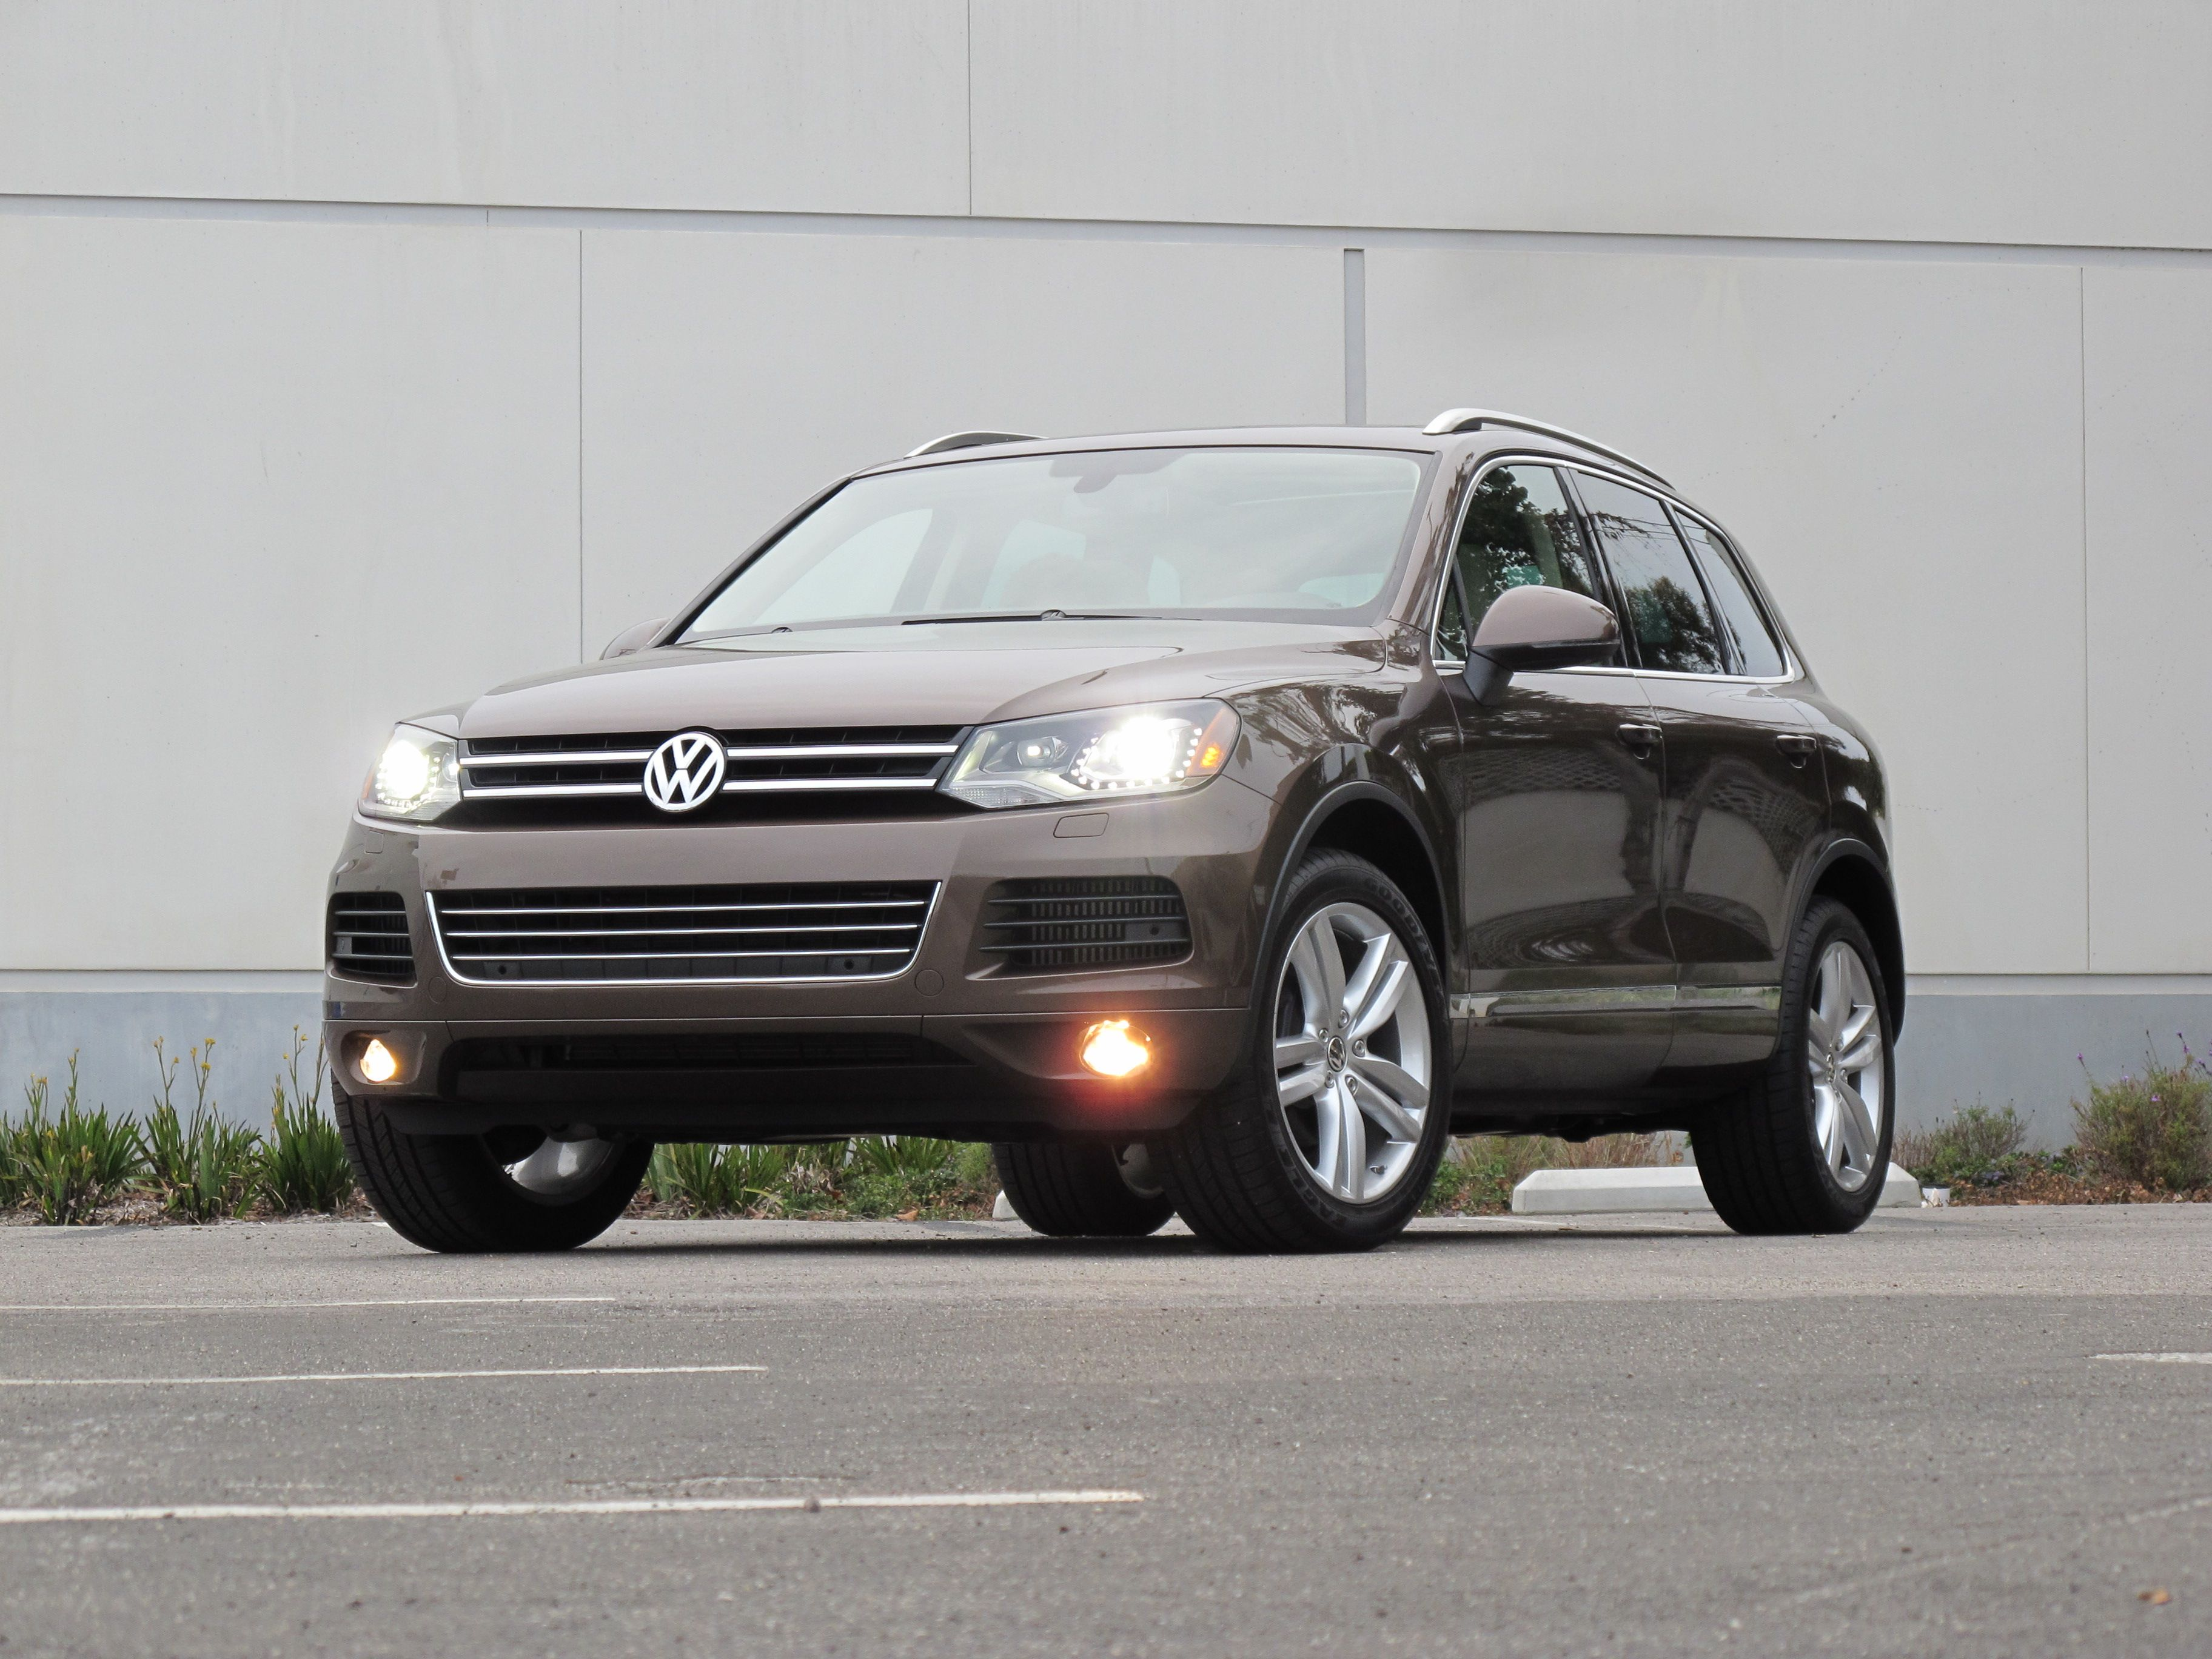 Volkswagen Touareg TDI Diesel e check out AMSOIL synthetic